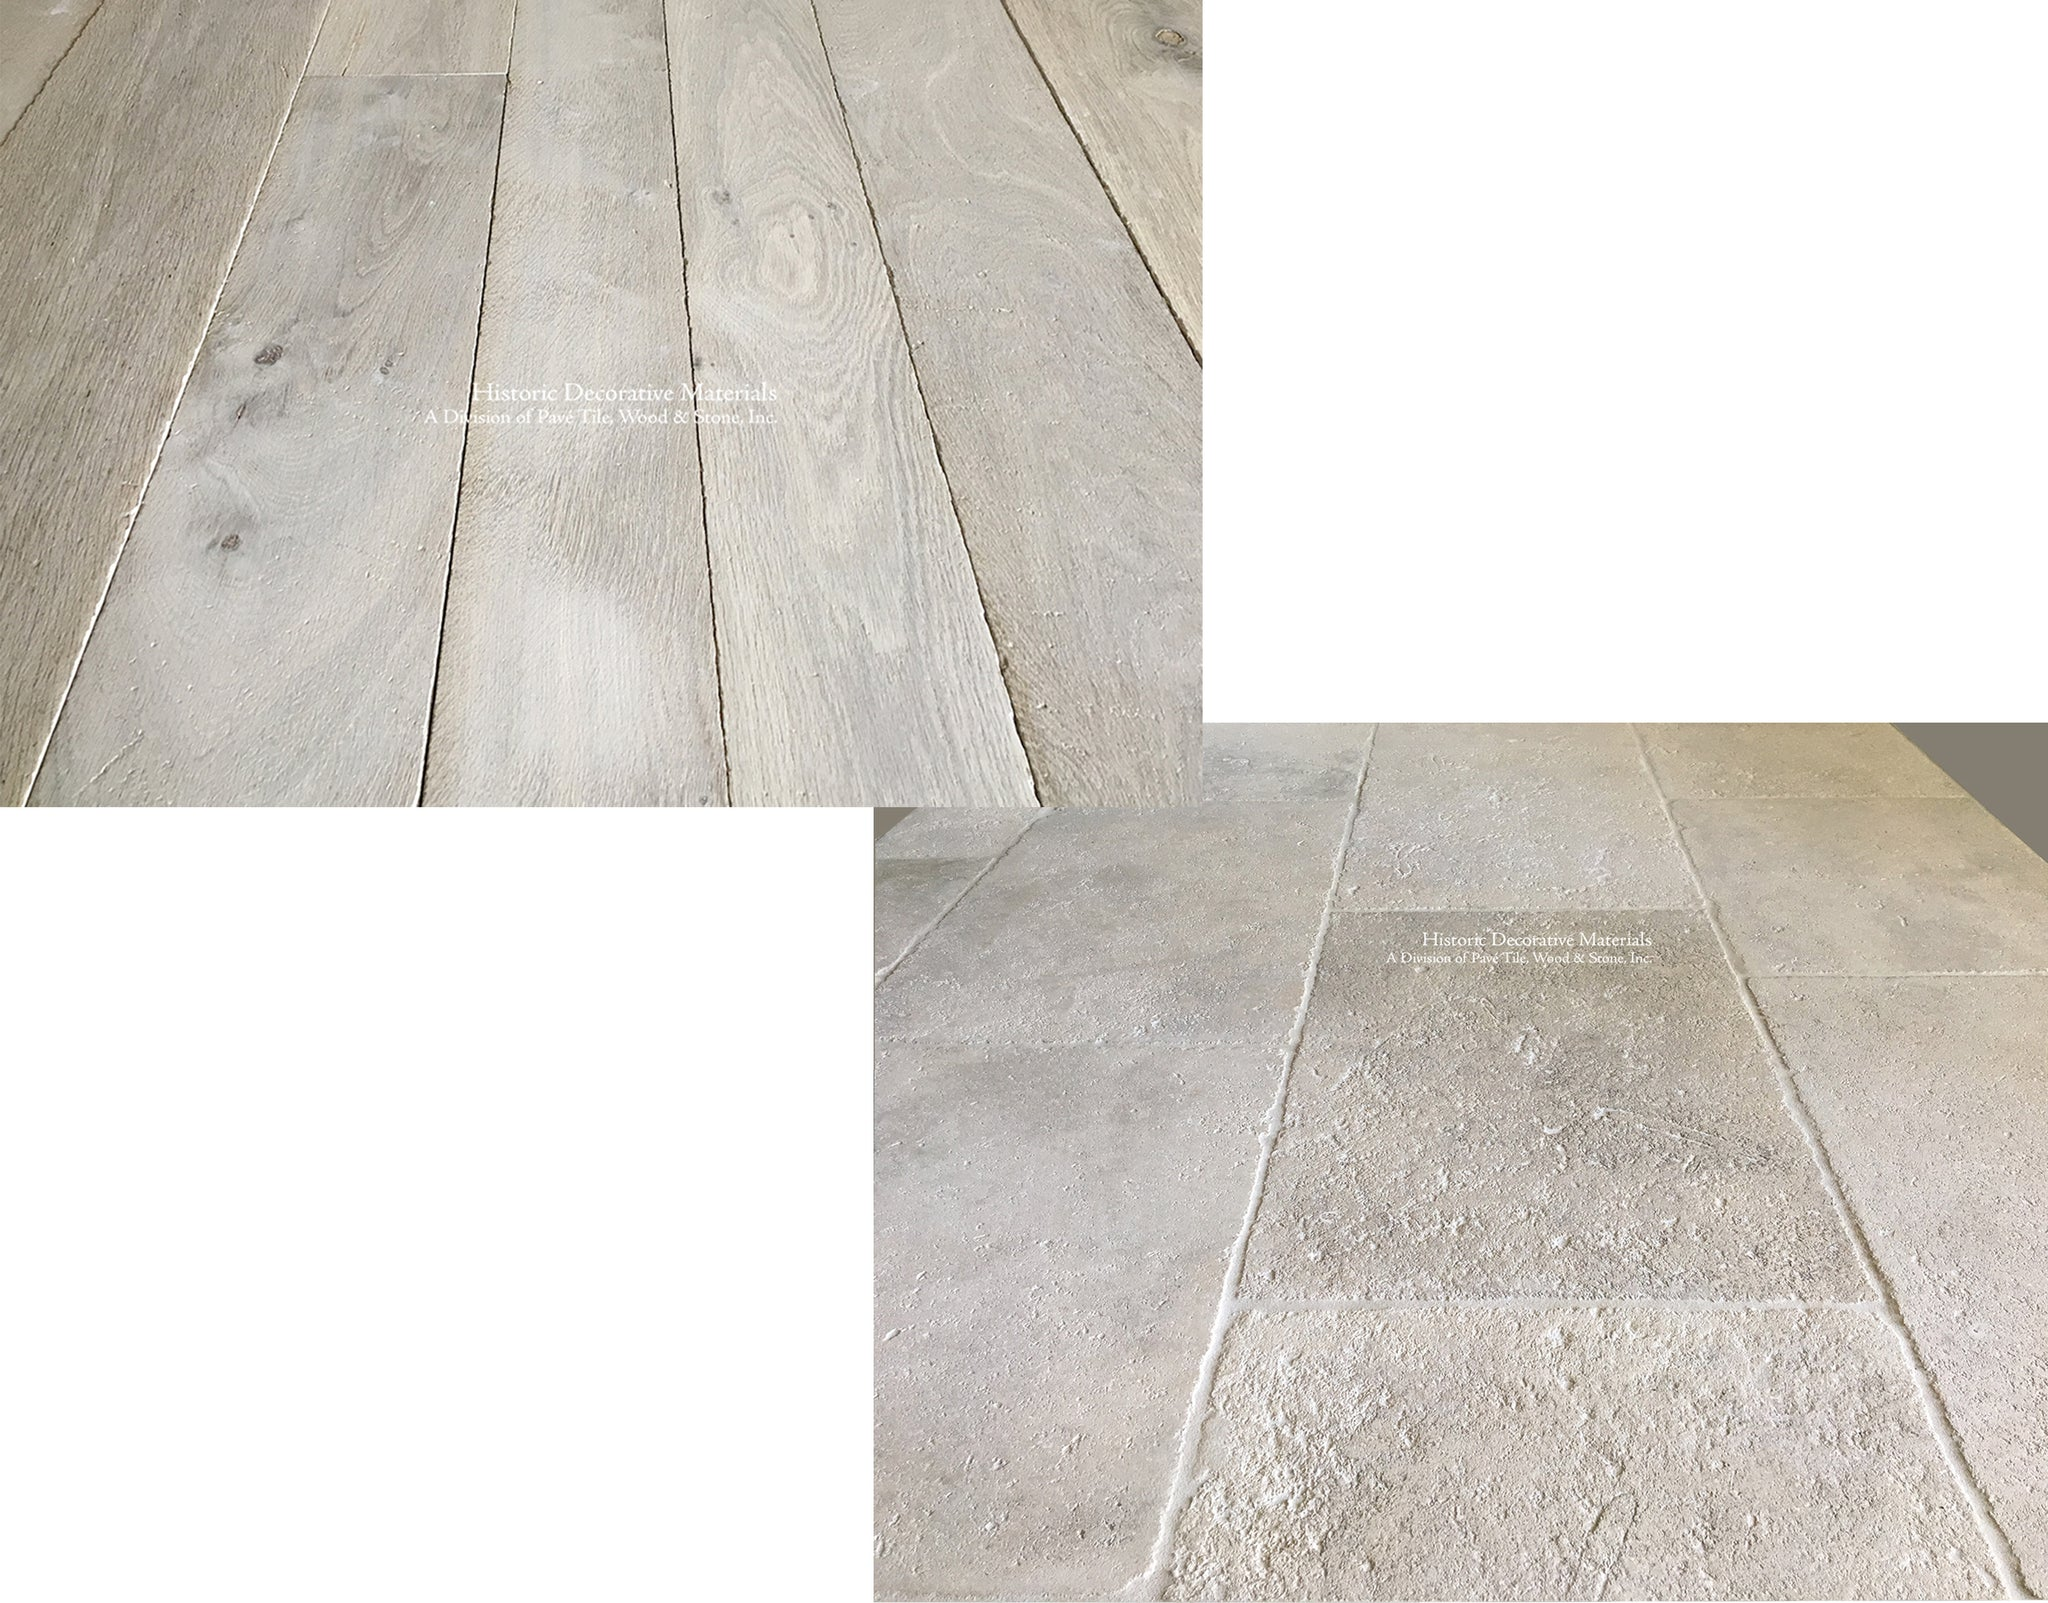 French Limestone Flooring and French Oak Flooring